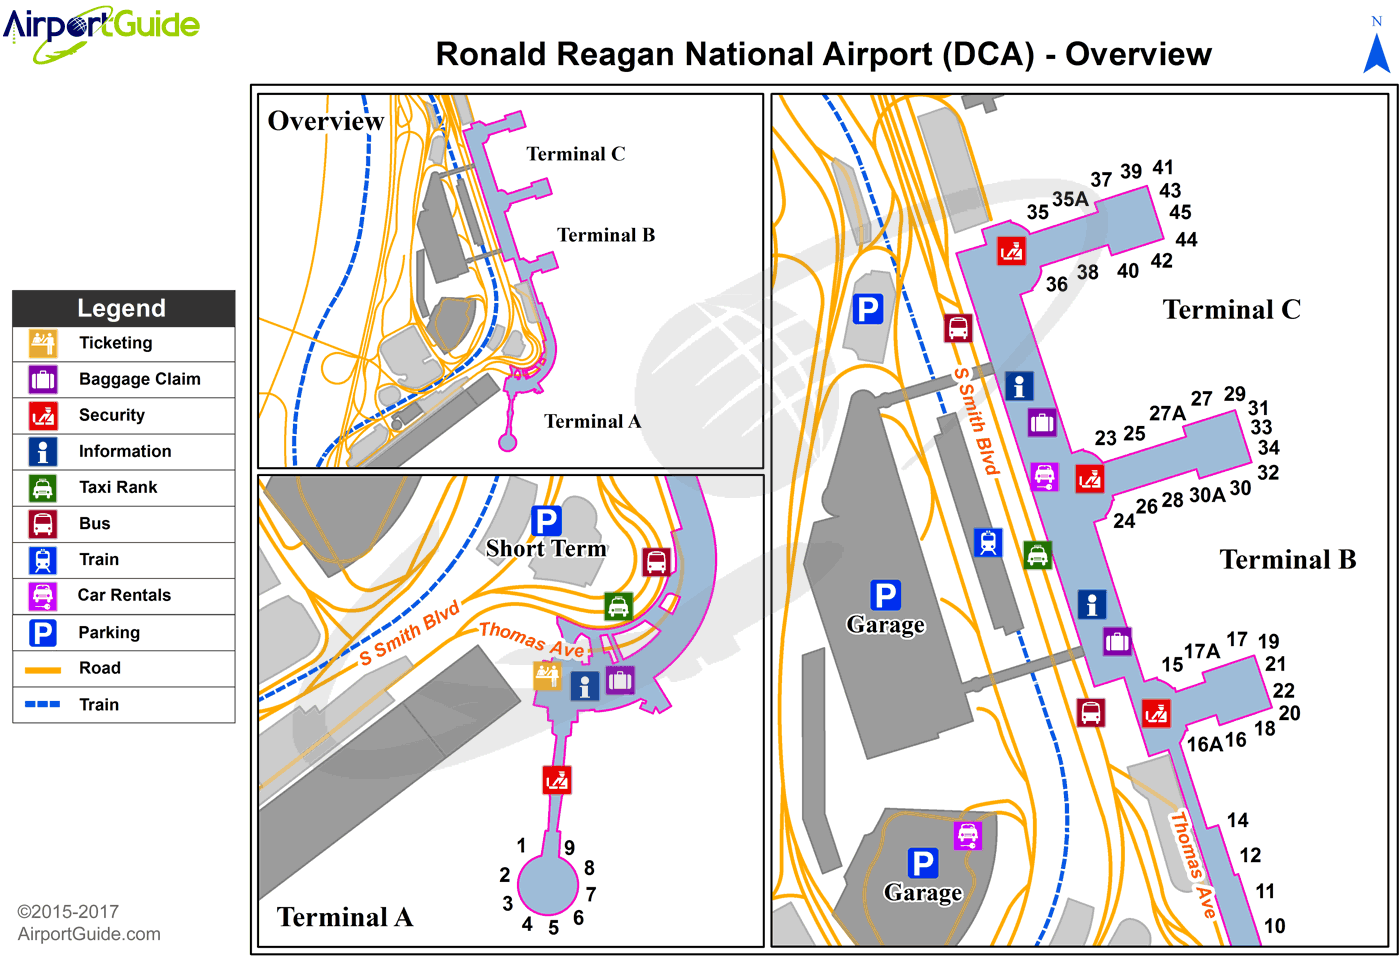 Washington - Easton/Newnam Field (DCA) Airport Terminal Map - Overview